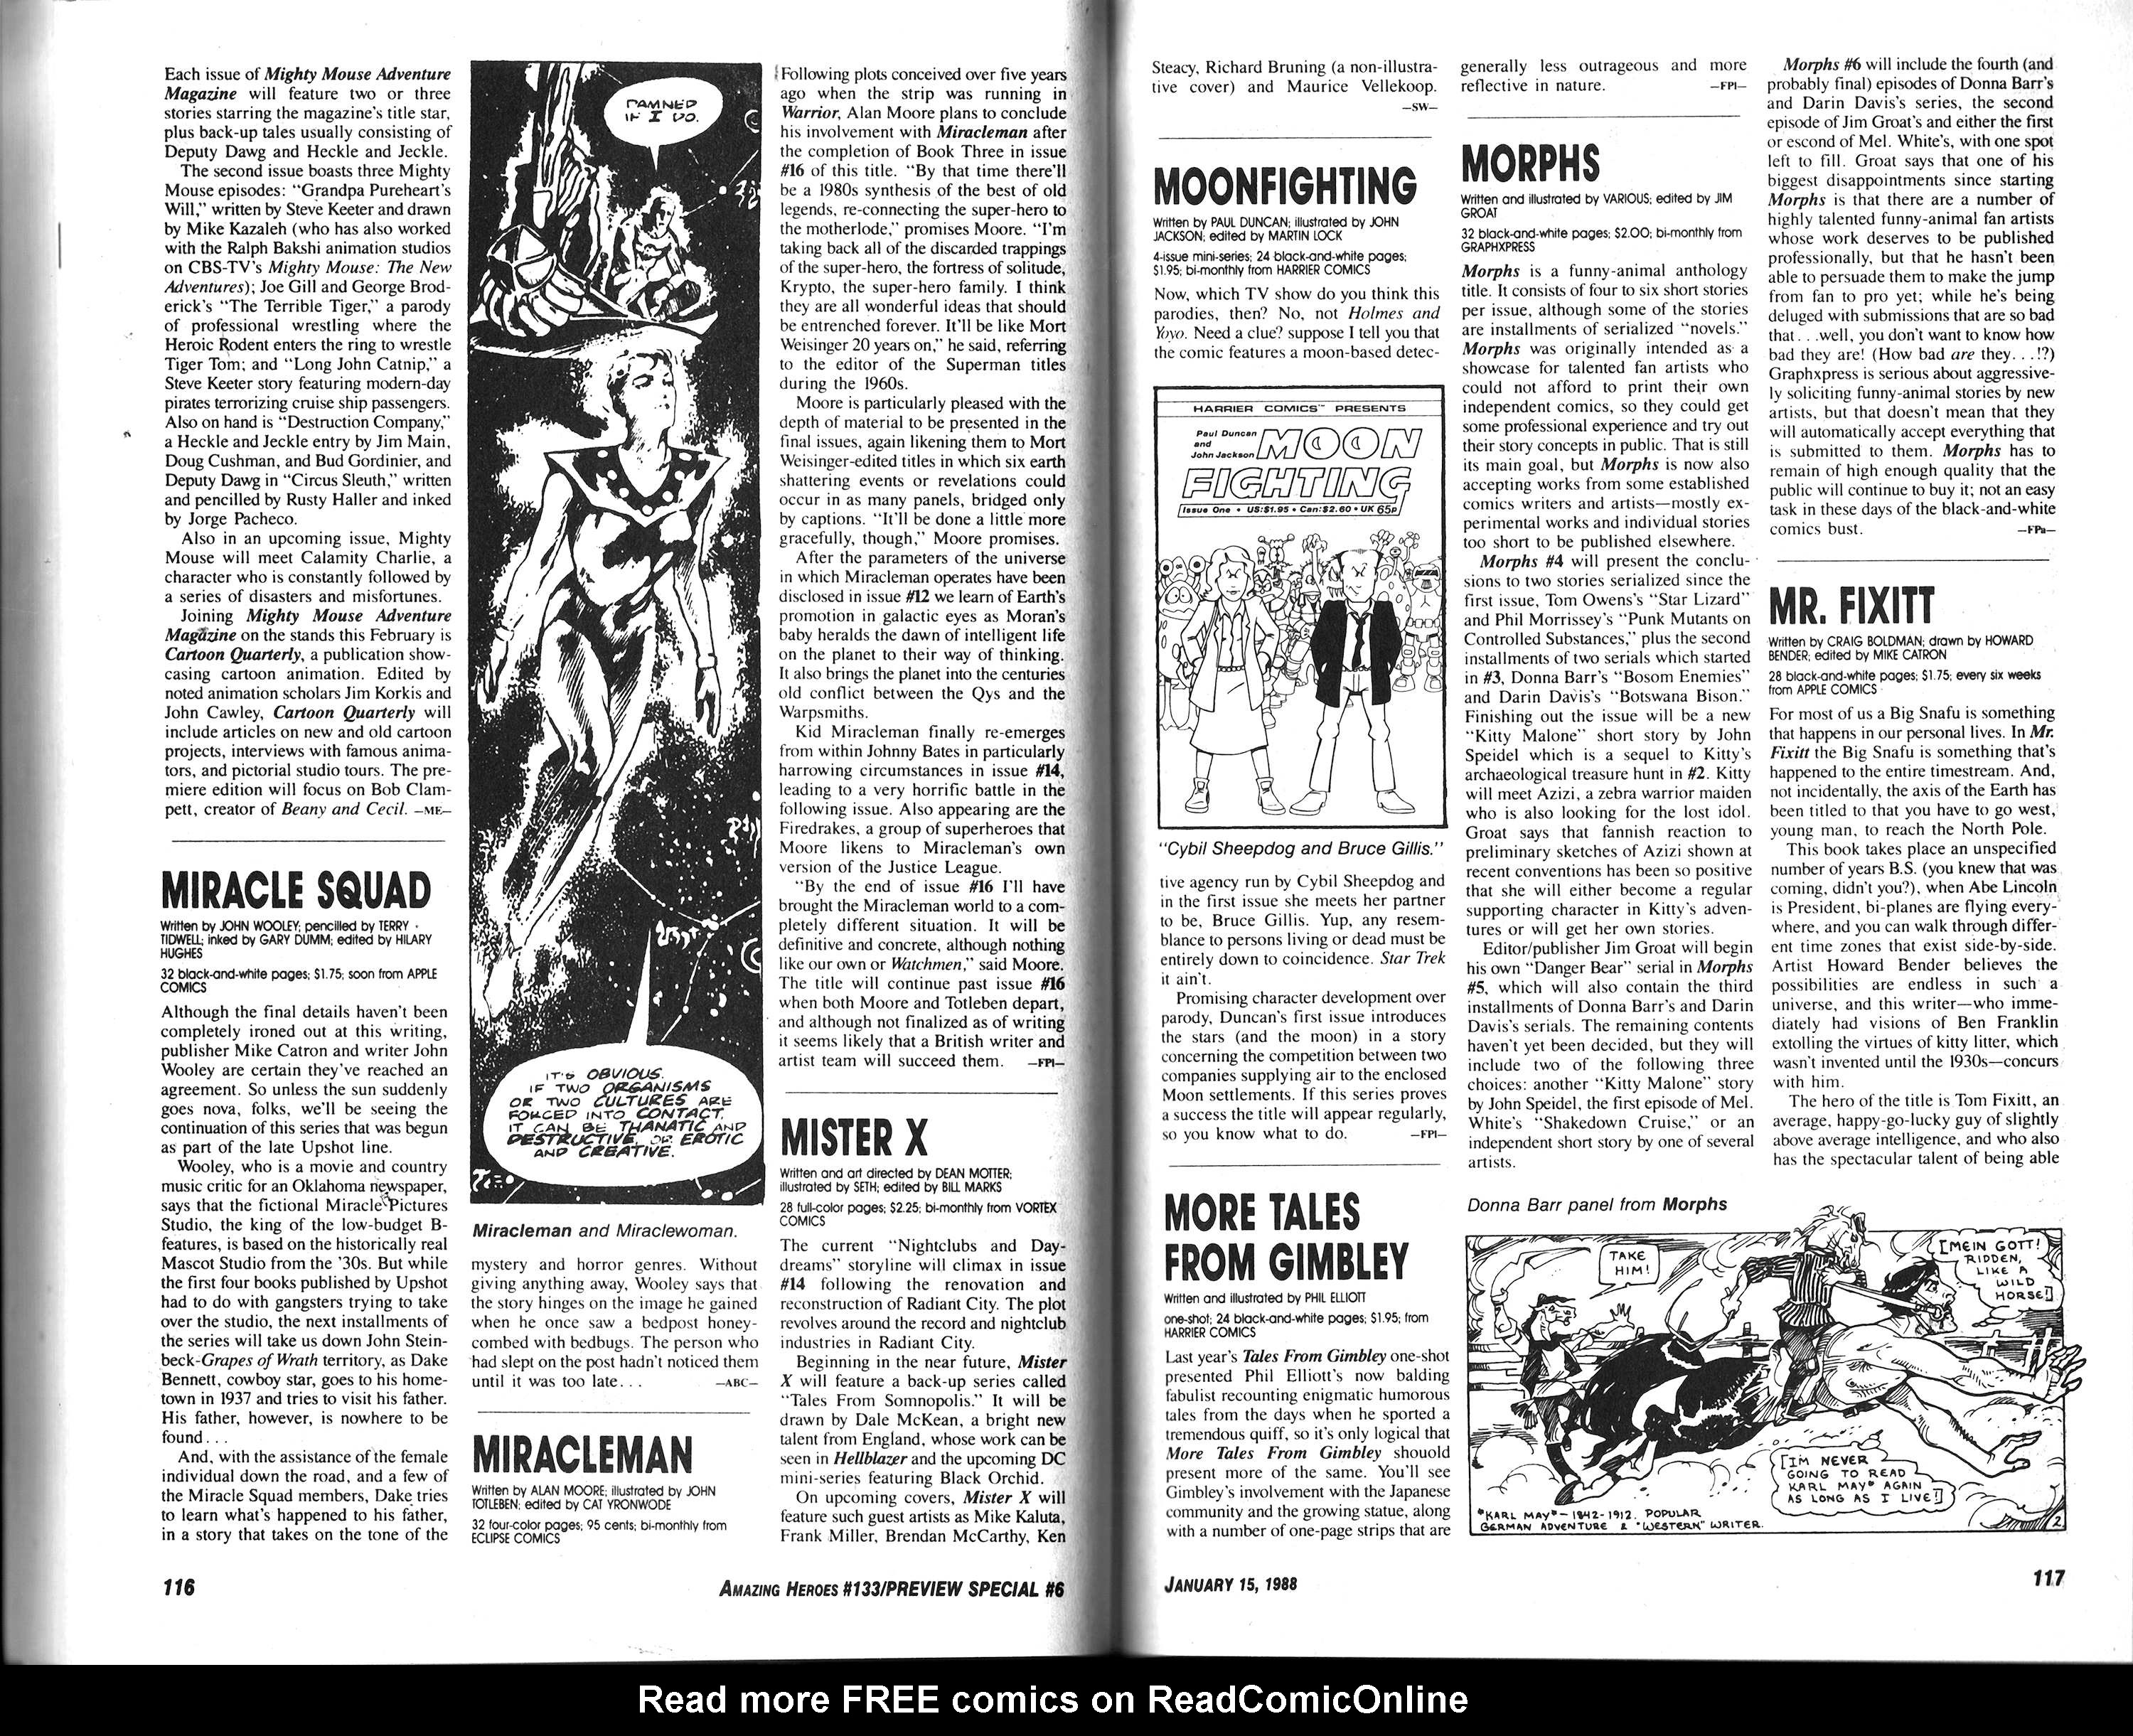 Read online Amazing Heroes comic -  Issue #133 - 60